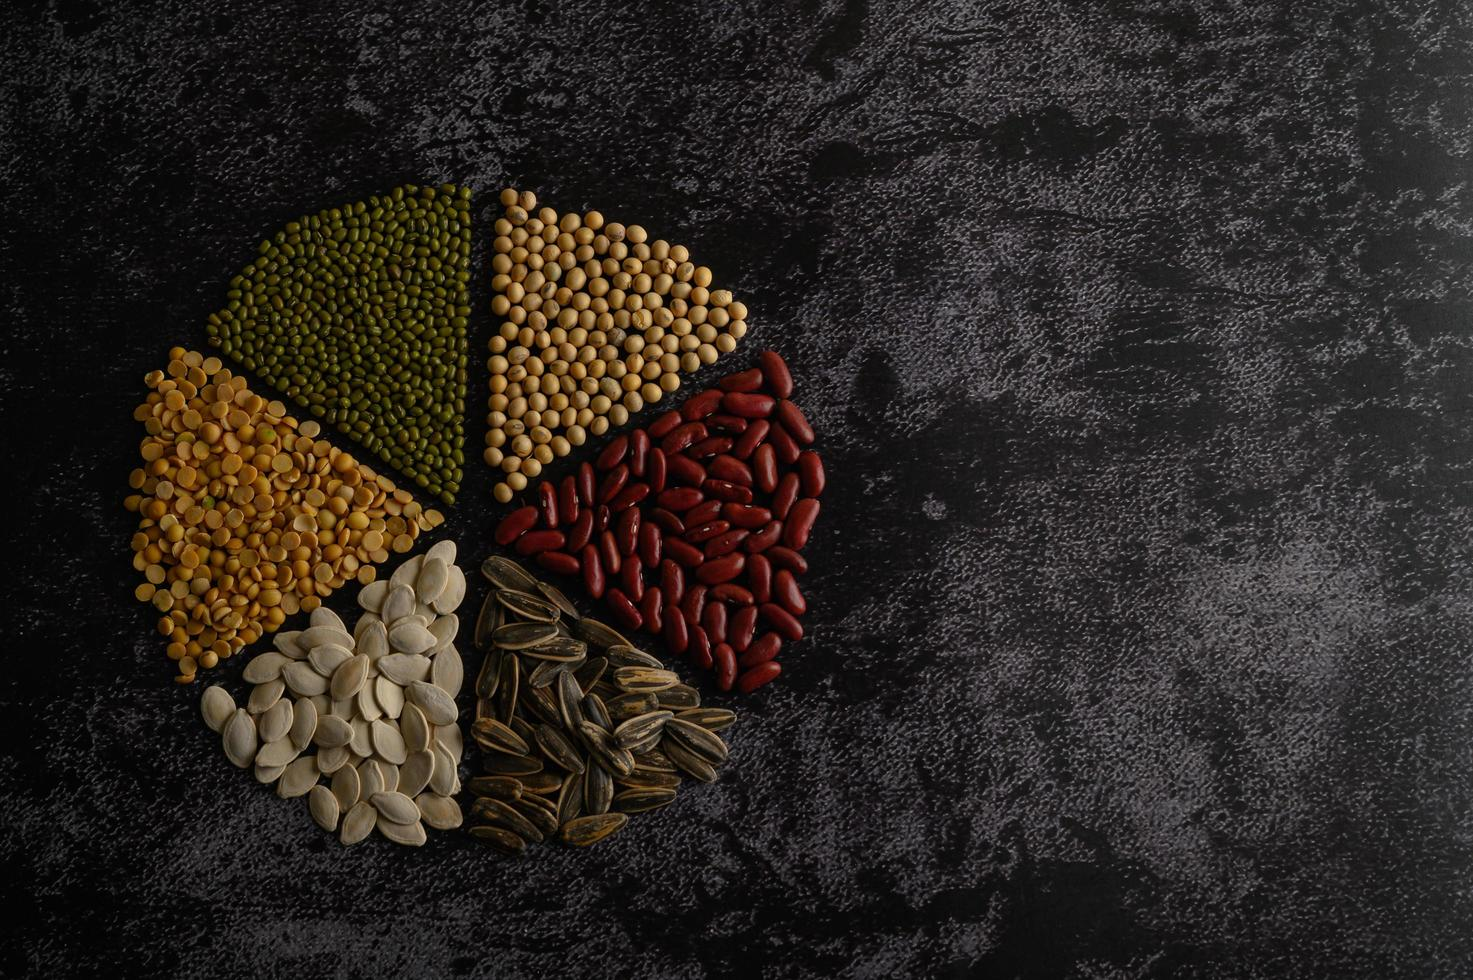 Legumes arranged in a circle on a black cement surface photo